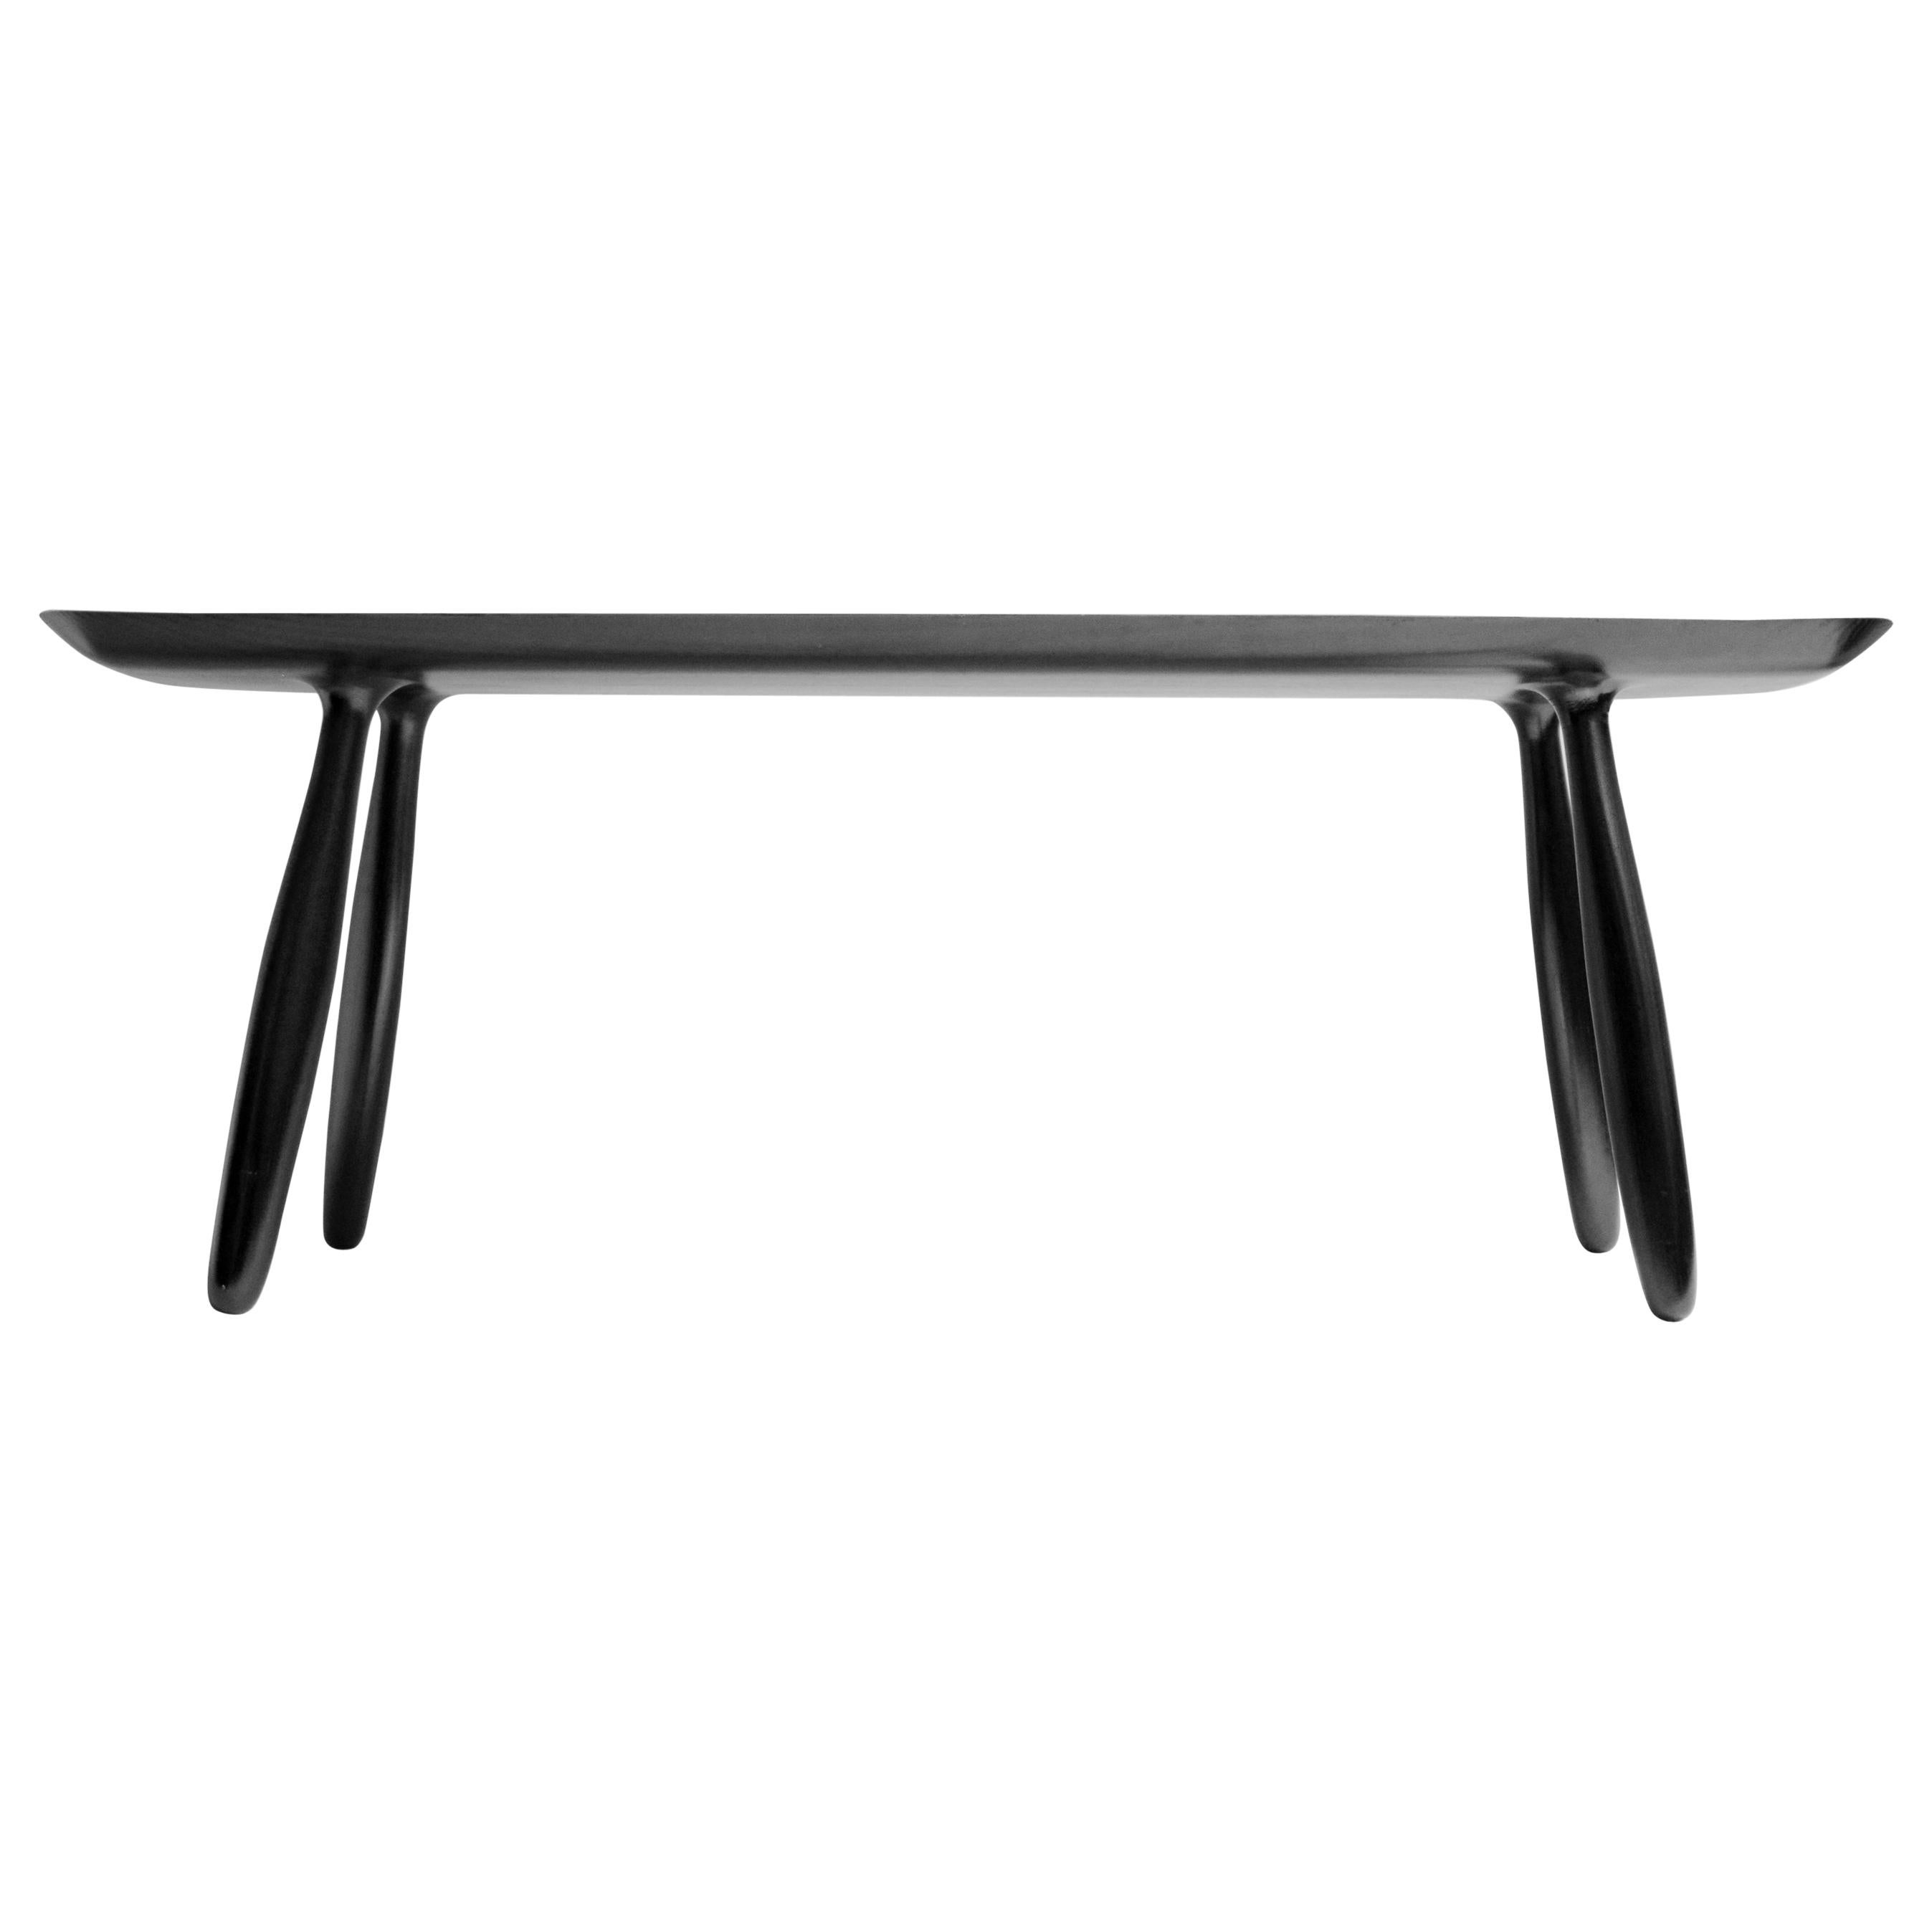 Daiku Bench by Victoria Magniant for Galerie V